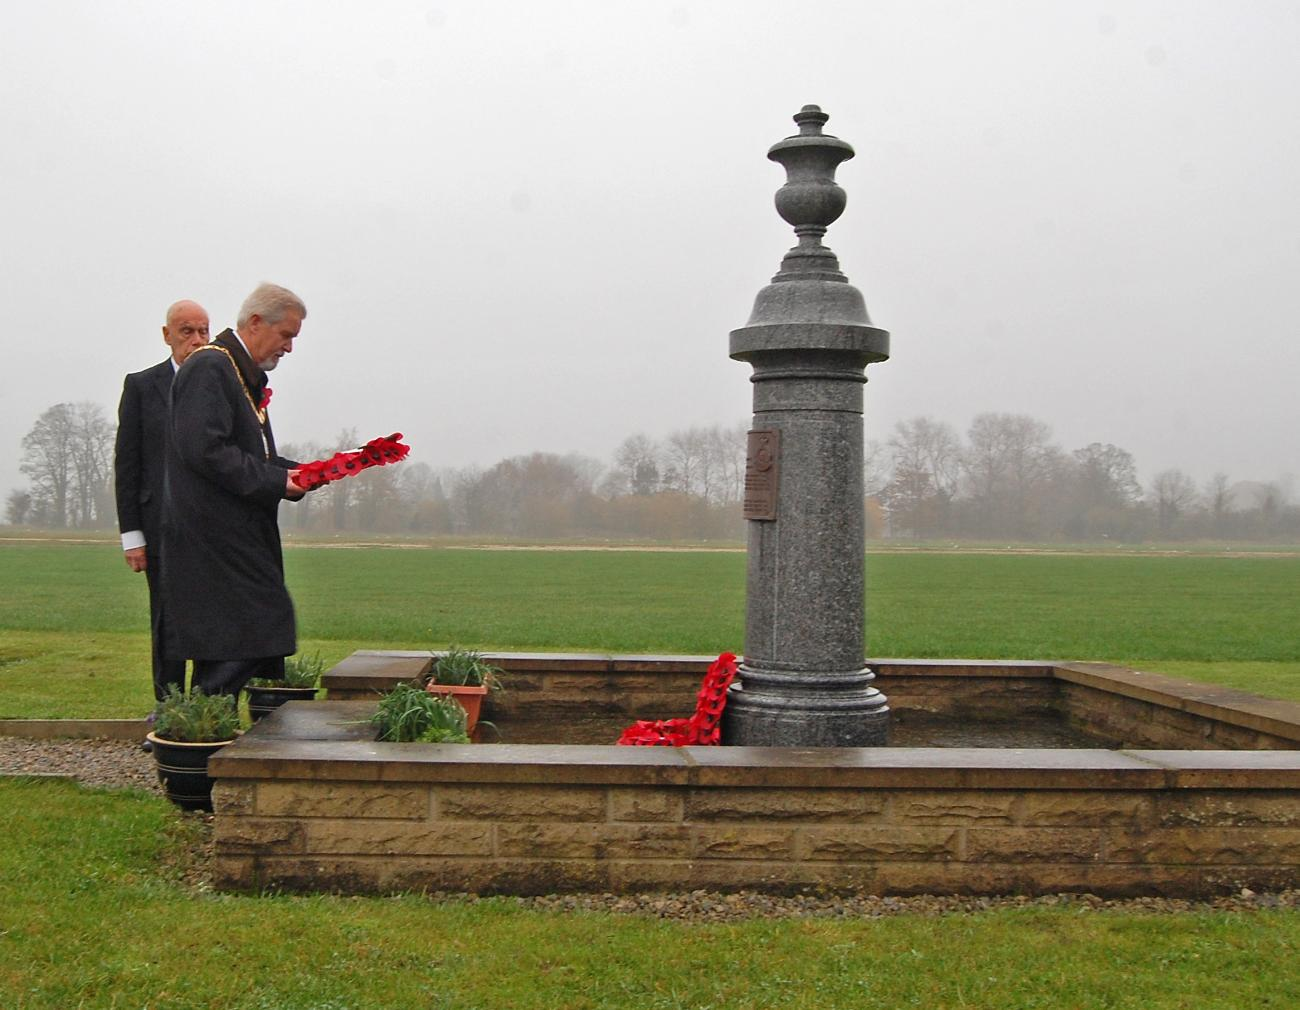 Mayor Graham Perry laying a wreath  at Wolds Gliding Club (Pocklington Airfield) on Rem Sunday 2011 - 102 Ceylon Squadron